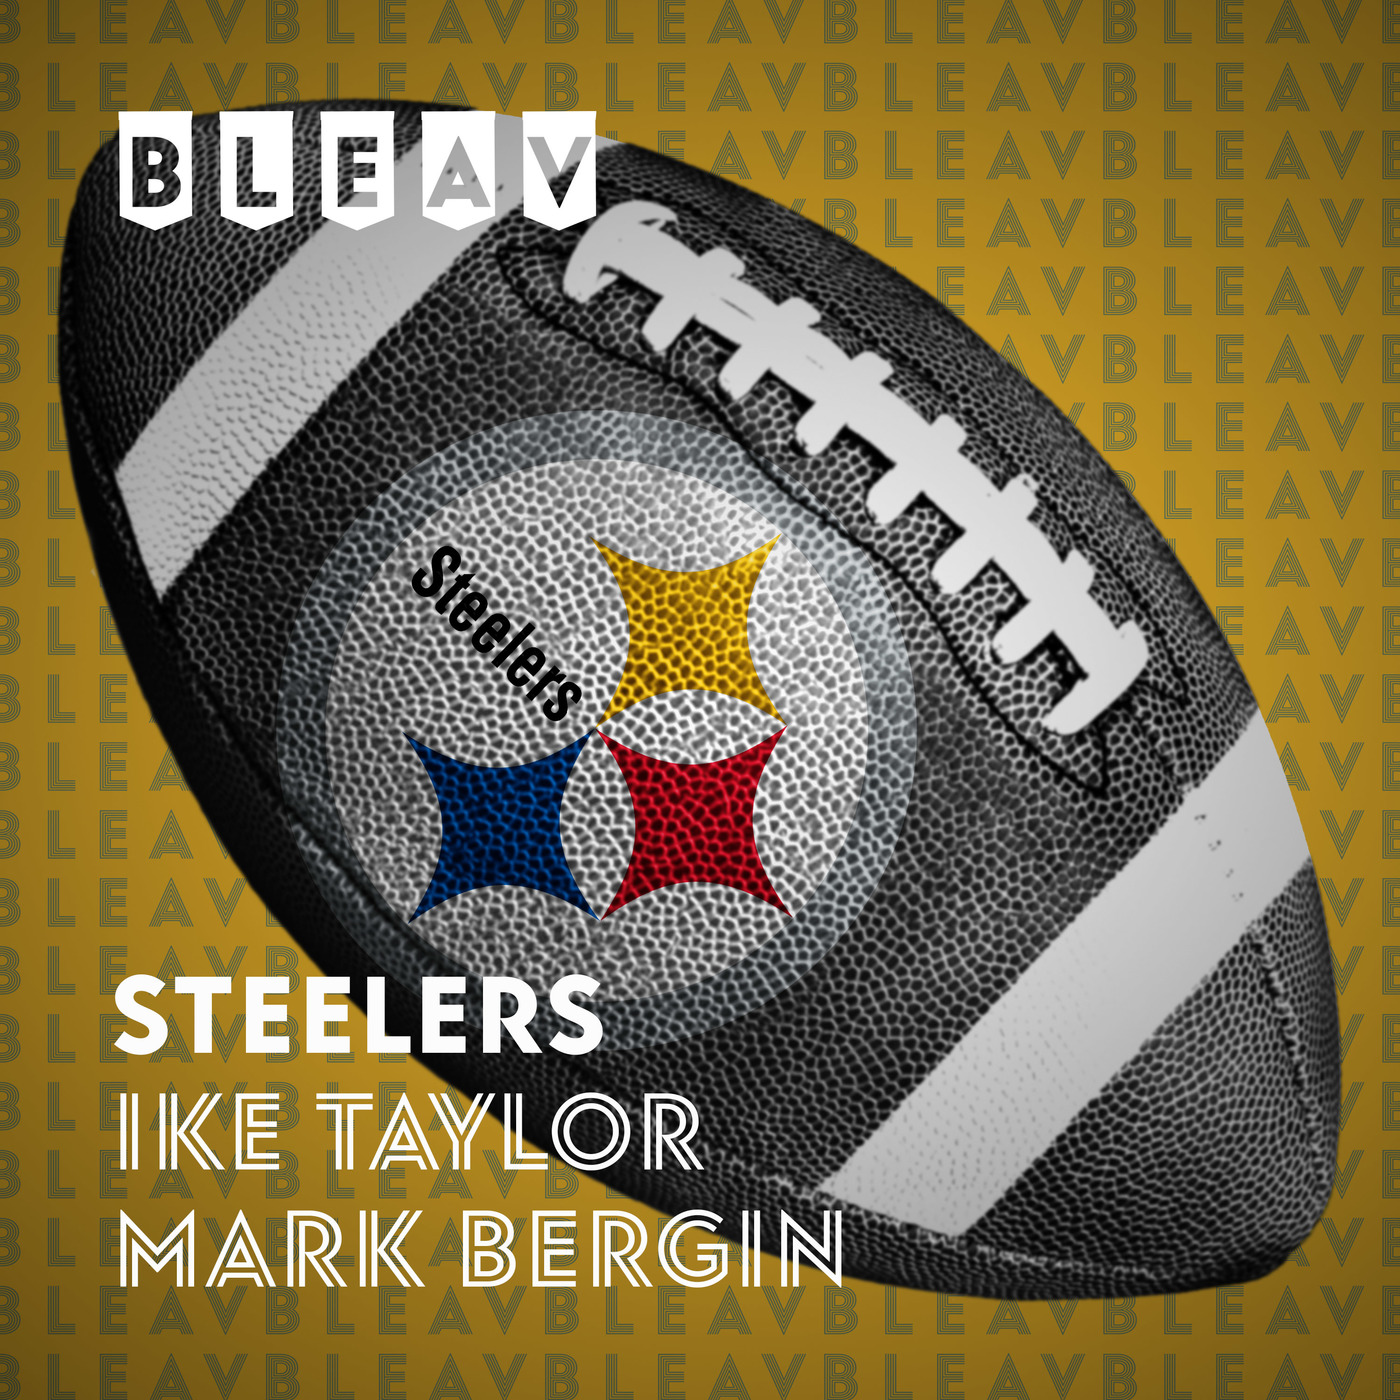 Possible coronavirus vaccine developed in Pittsburgh, Offseason mailbag of listener questions